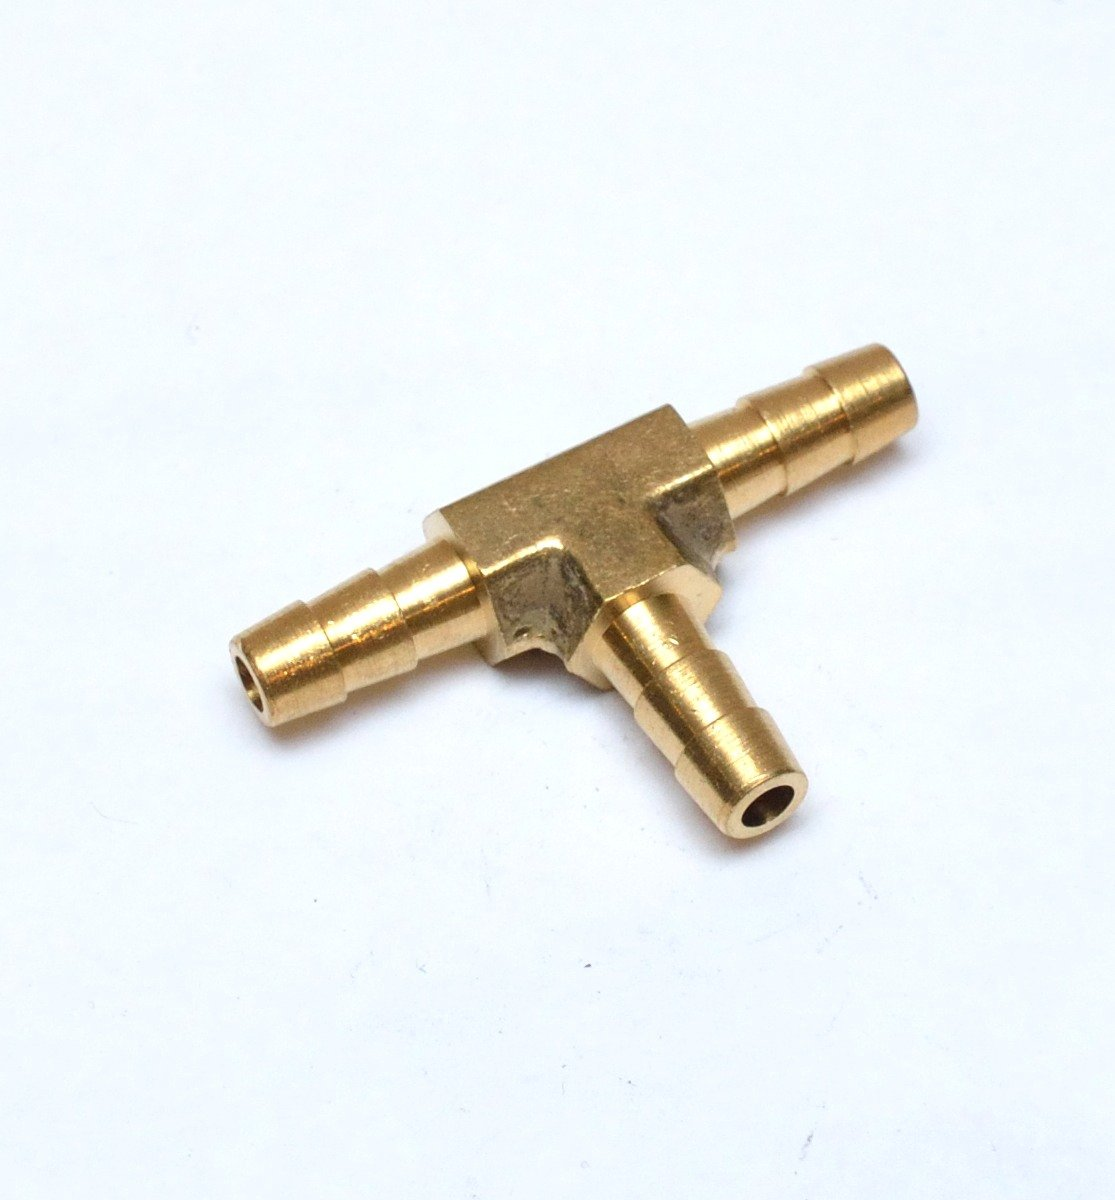 FasParts Brass Tee Daily bargain sale Union Mender Joiner ID 4